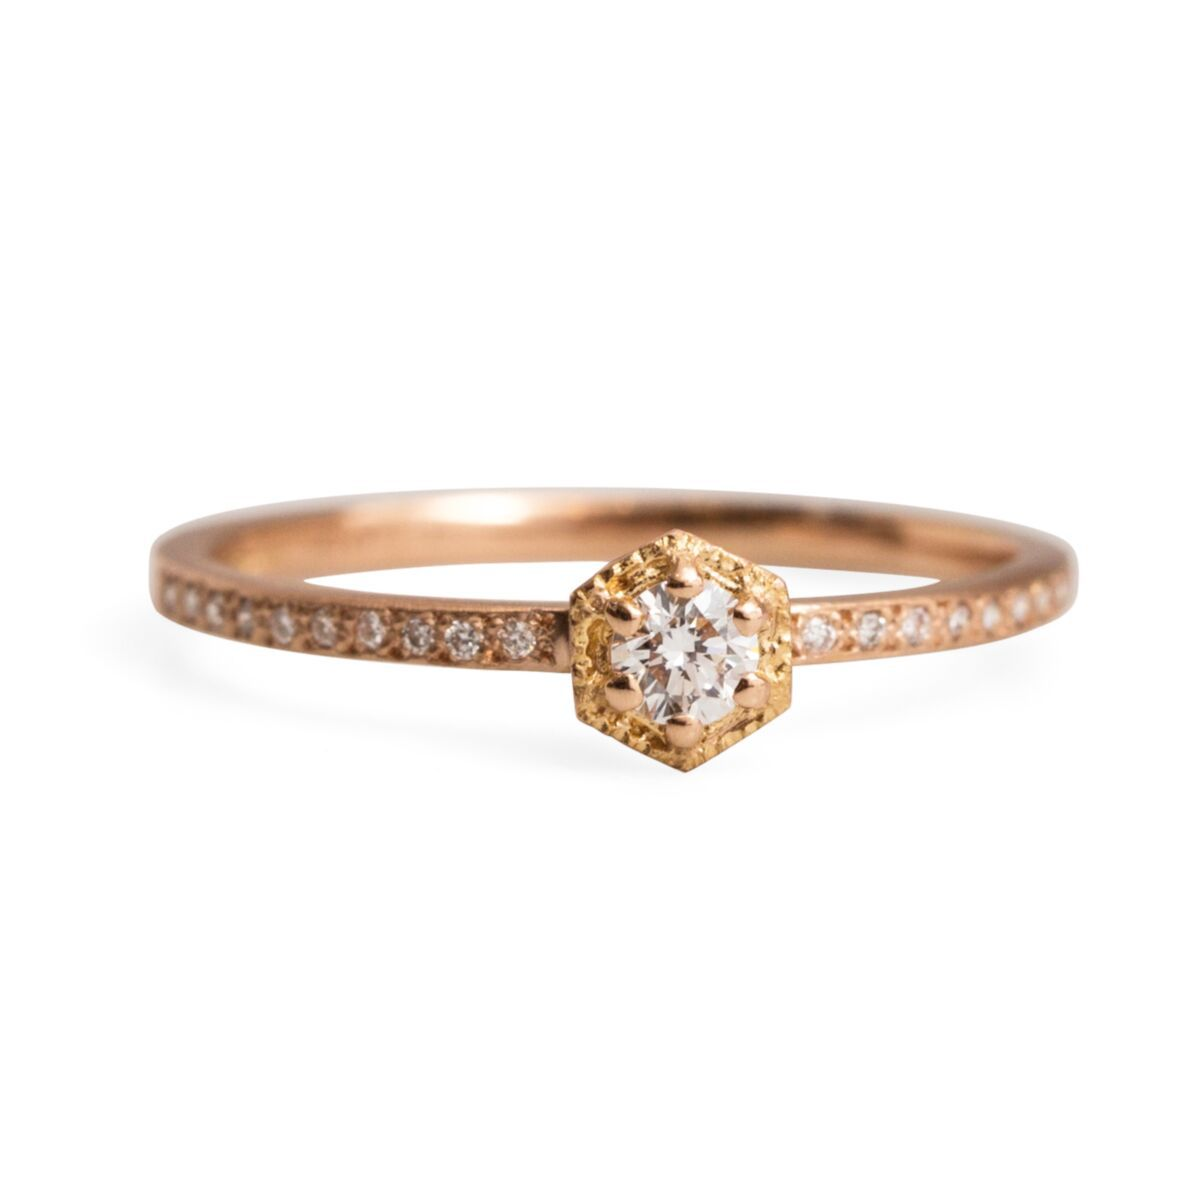 Brilliant-cut diamond in a gold hexagonal setting with a diamond pave band